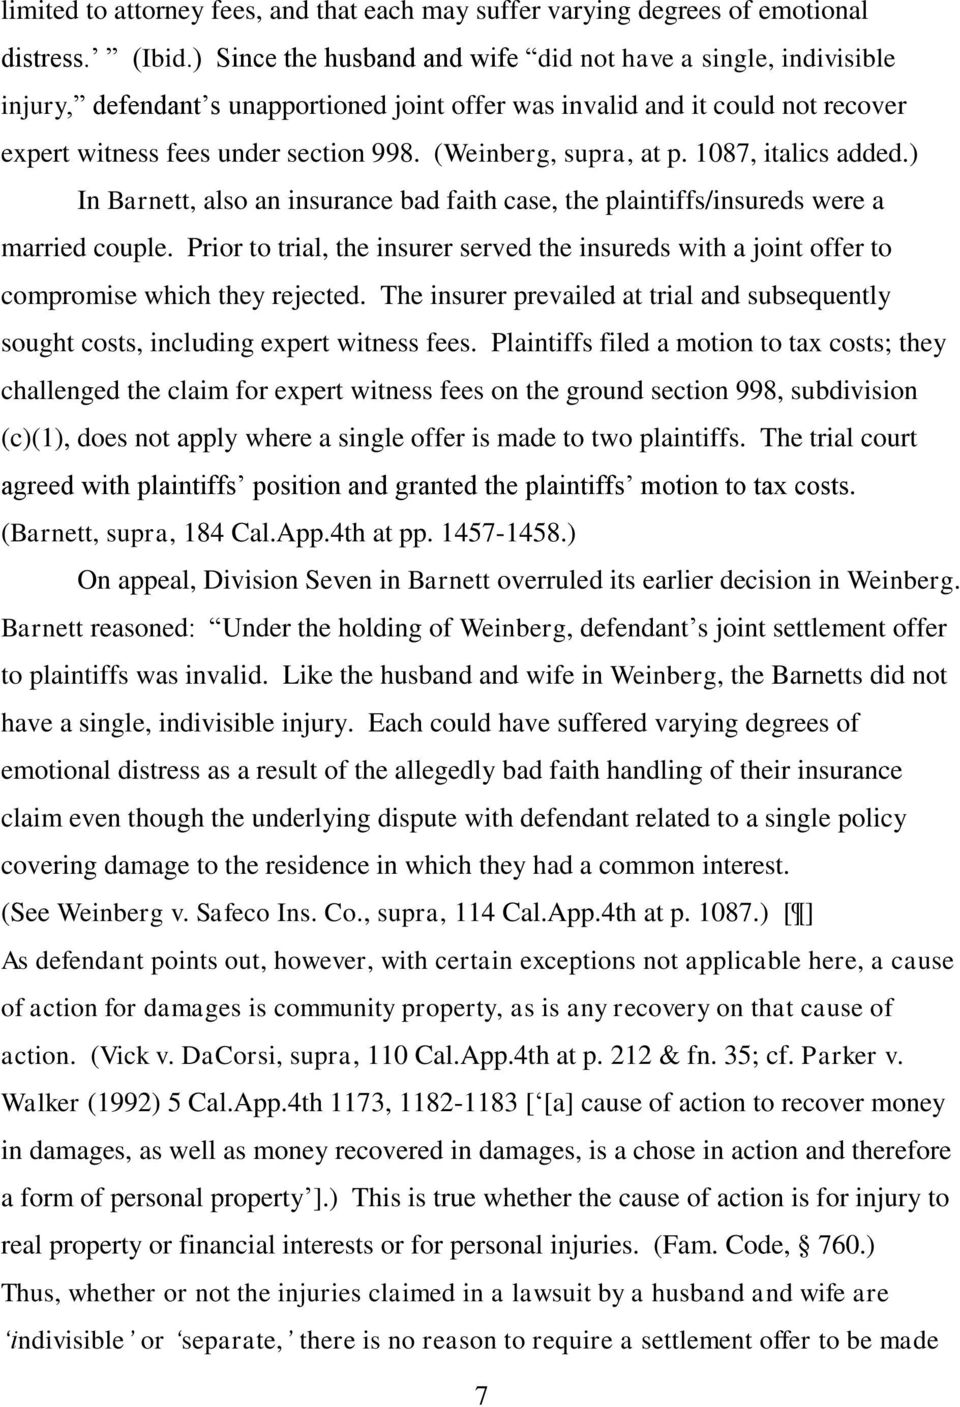 (Weinberg, supra, at p. 1087, italics added.) In Barnett, also an insurance bad faith case, the plaintiffs/insureds were a married couple.